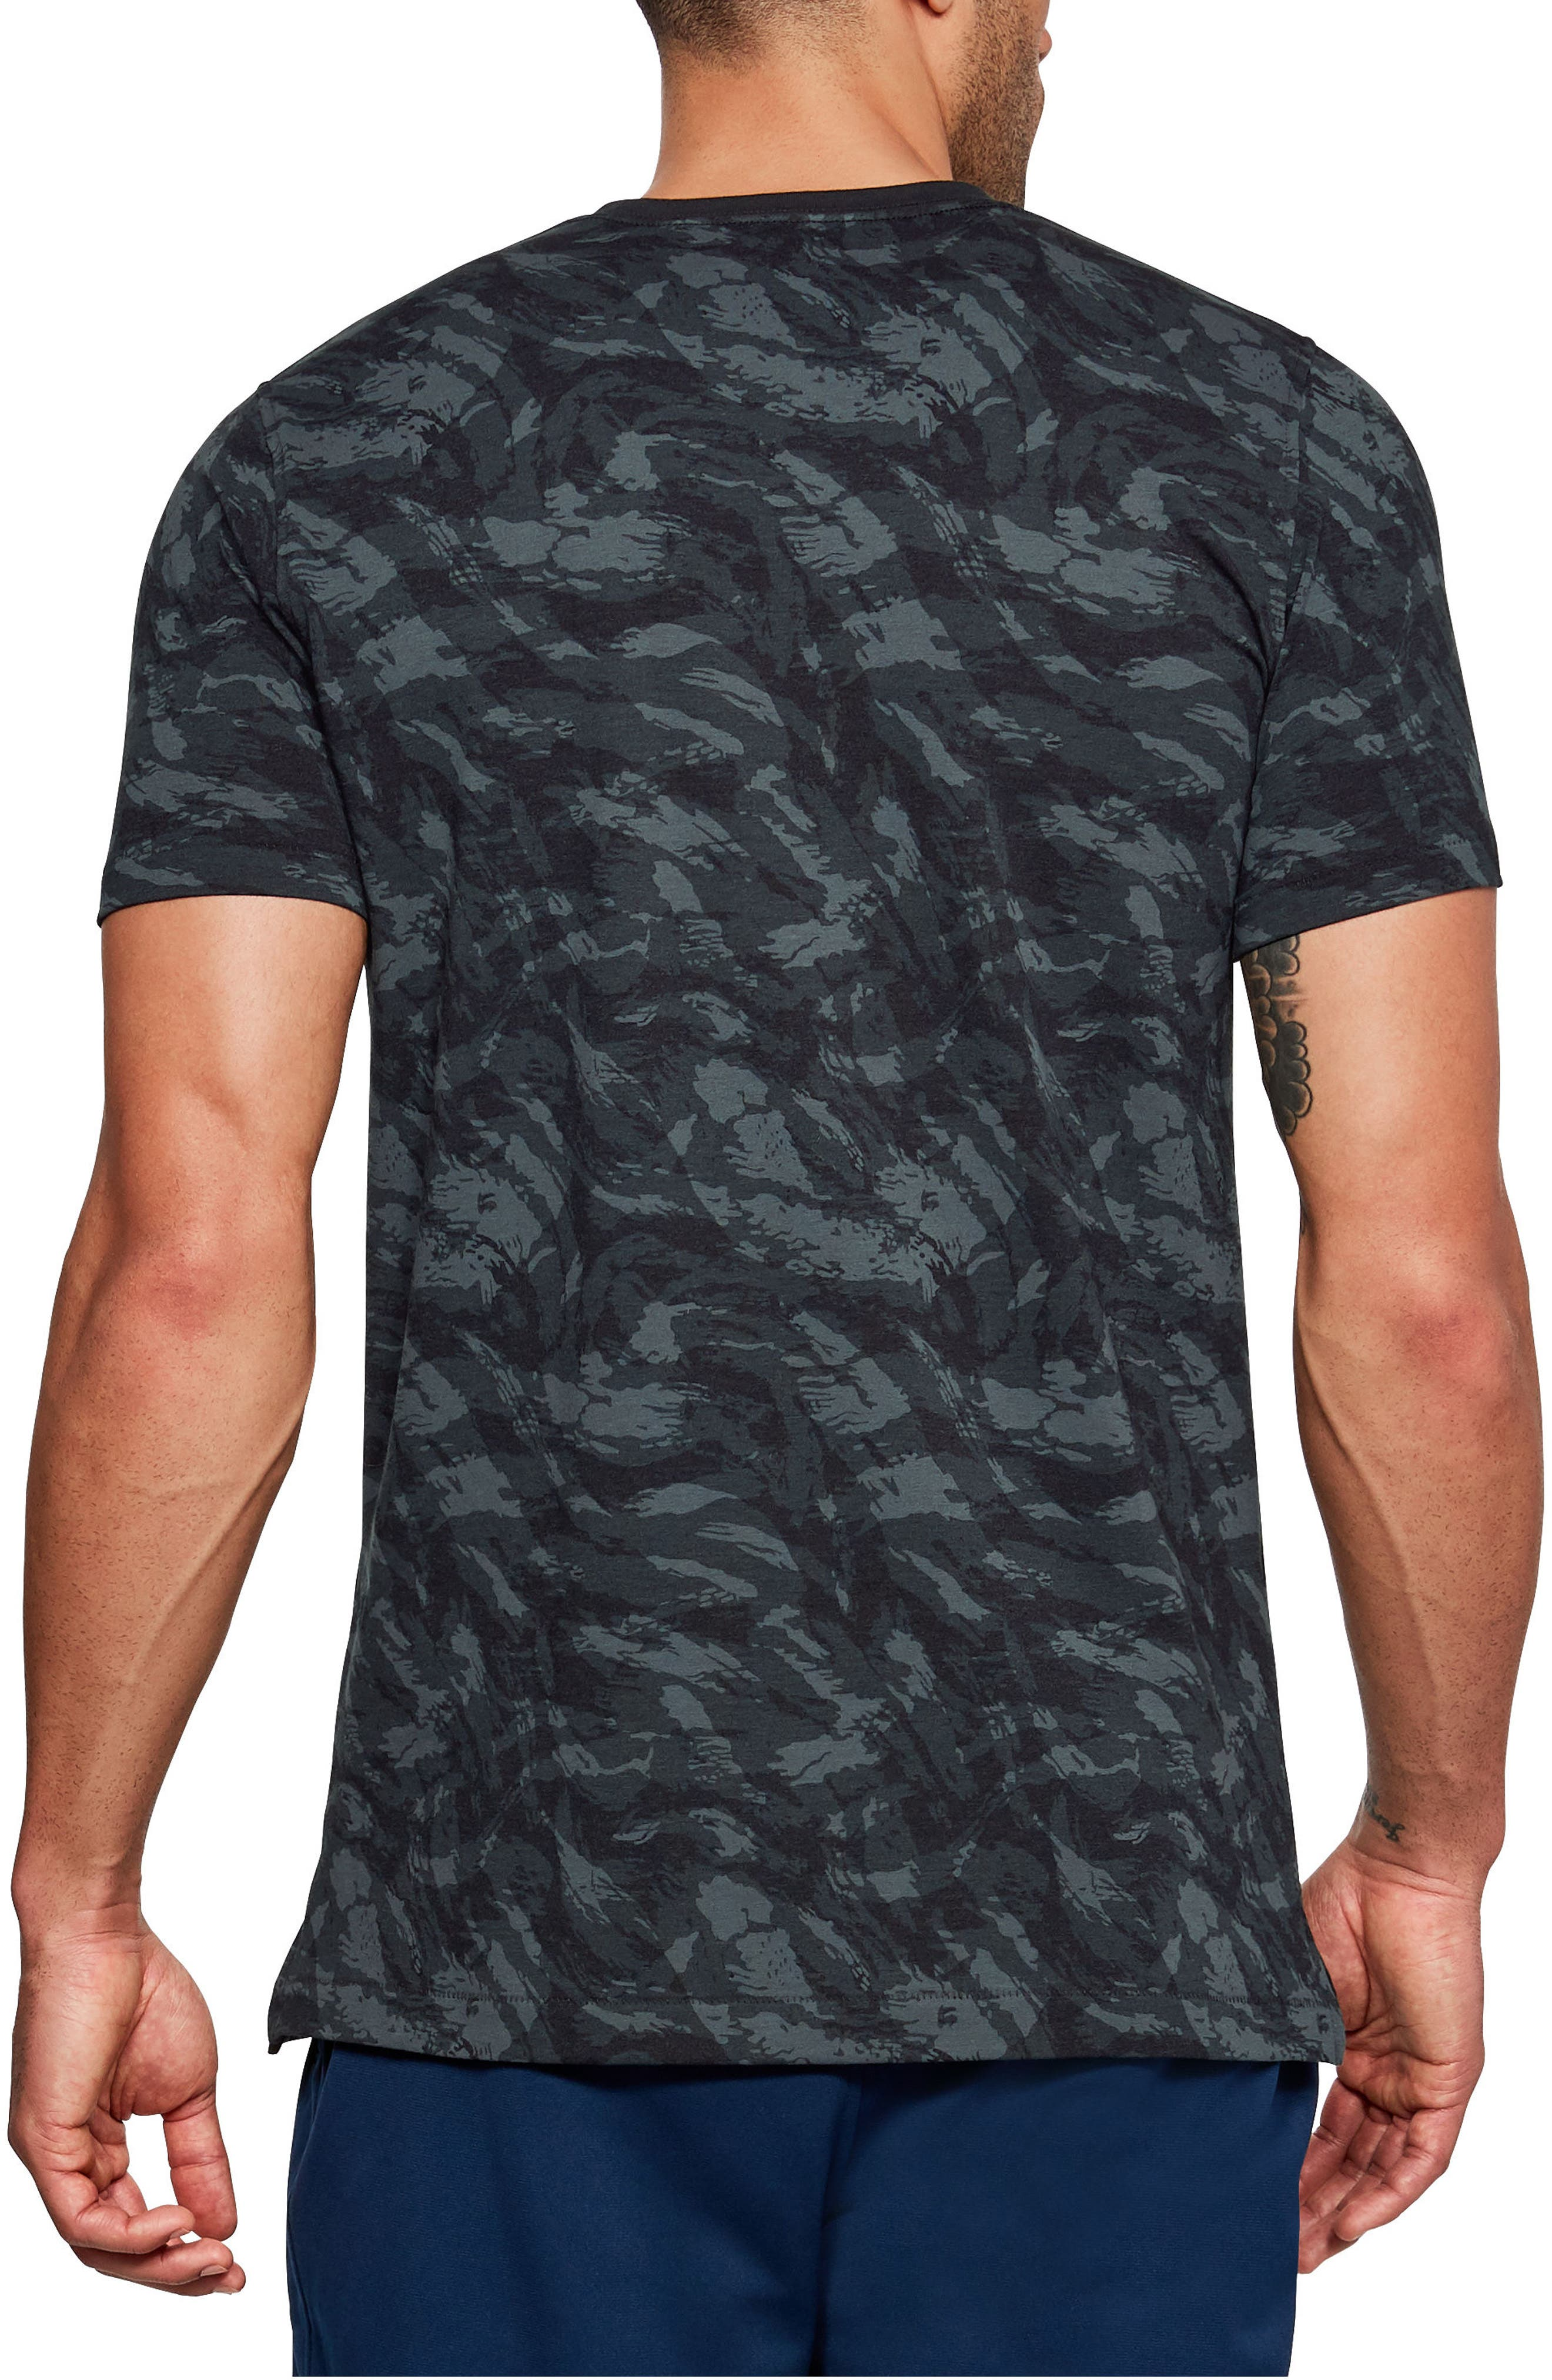 Sportstyle Print Charged Cotton<sup>®</sup> Fitted T-Shirt,                             Alternate thumbnail 2, color,                             001